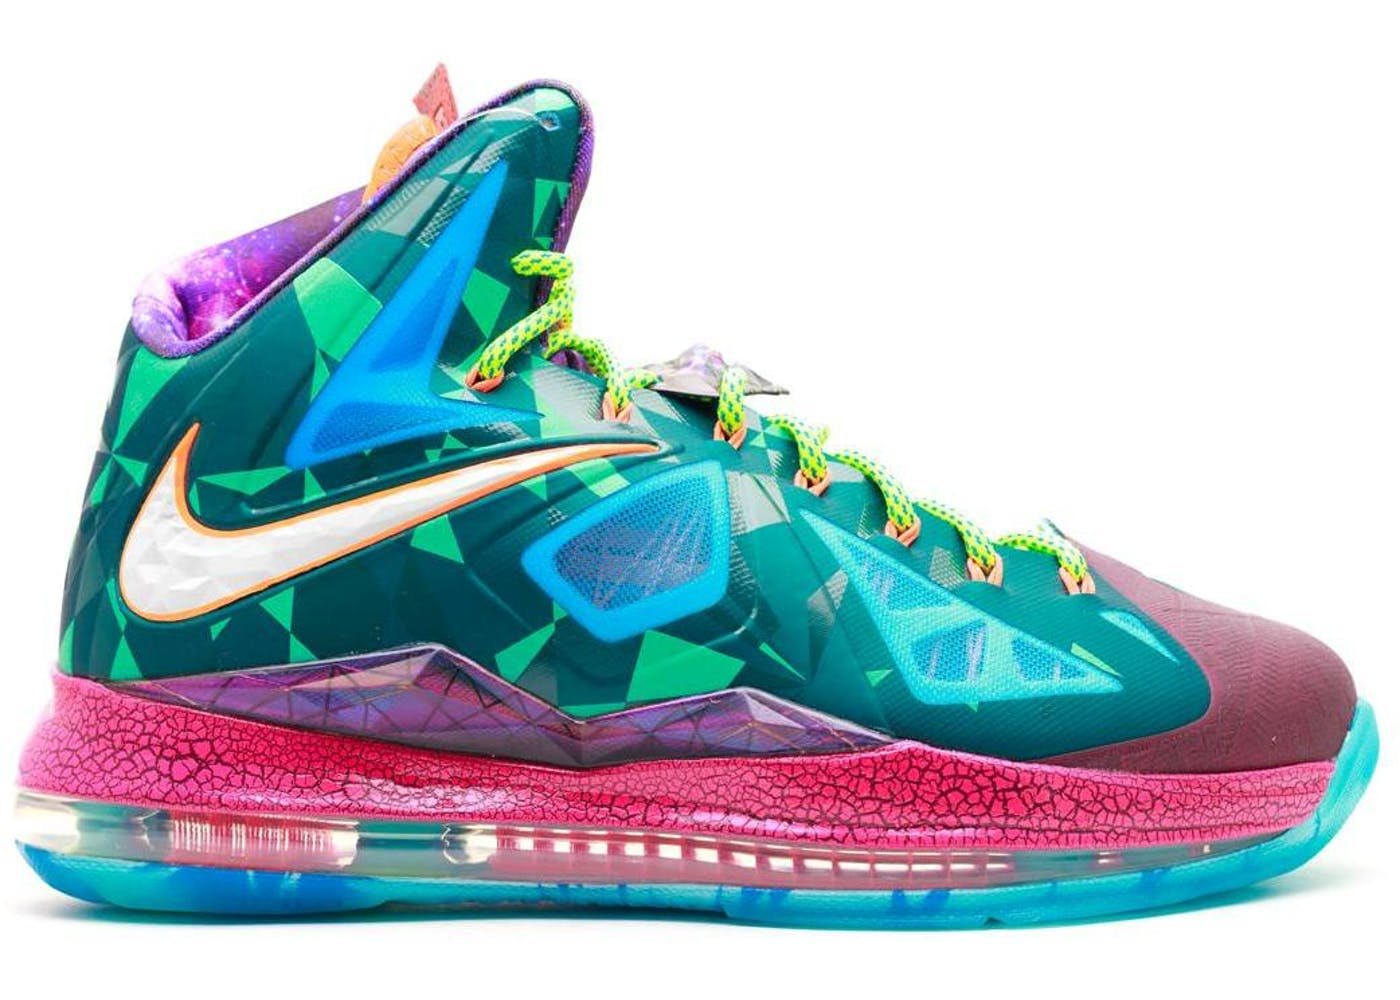 Lebron X Mvp Shoes For Sale